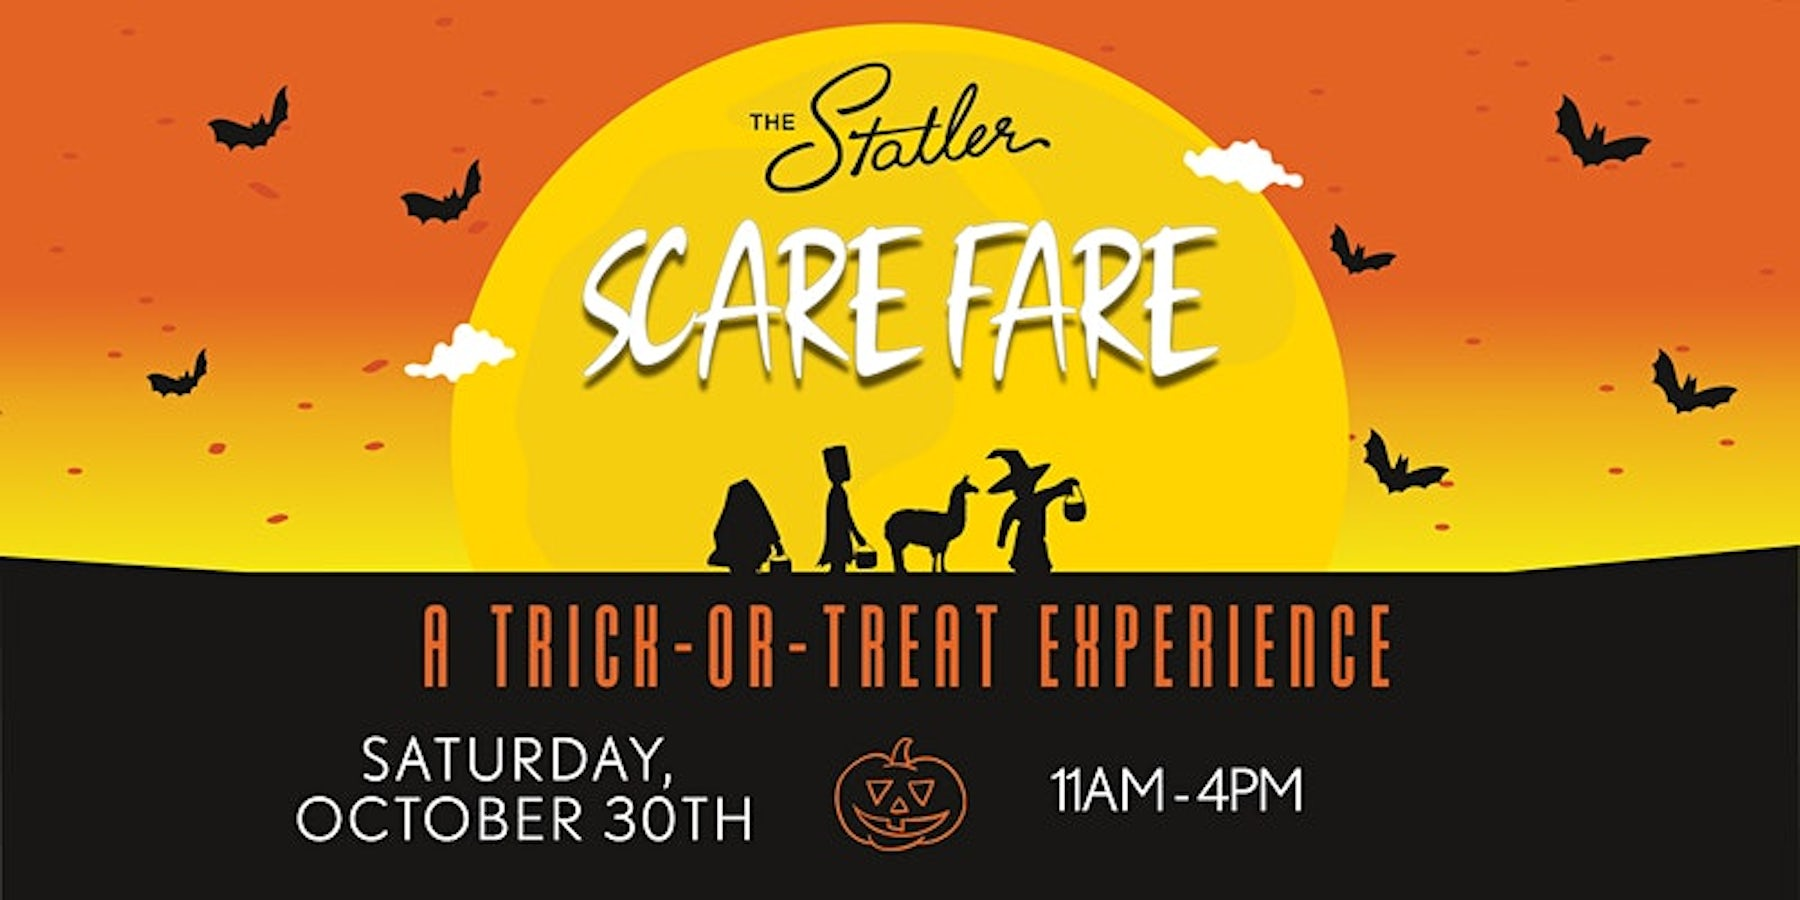 2nd Annual Scare Fare at The Statler